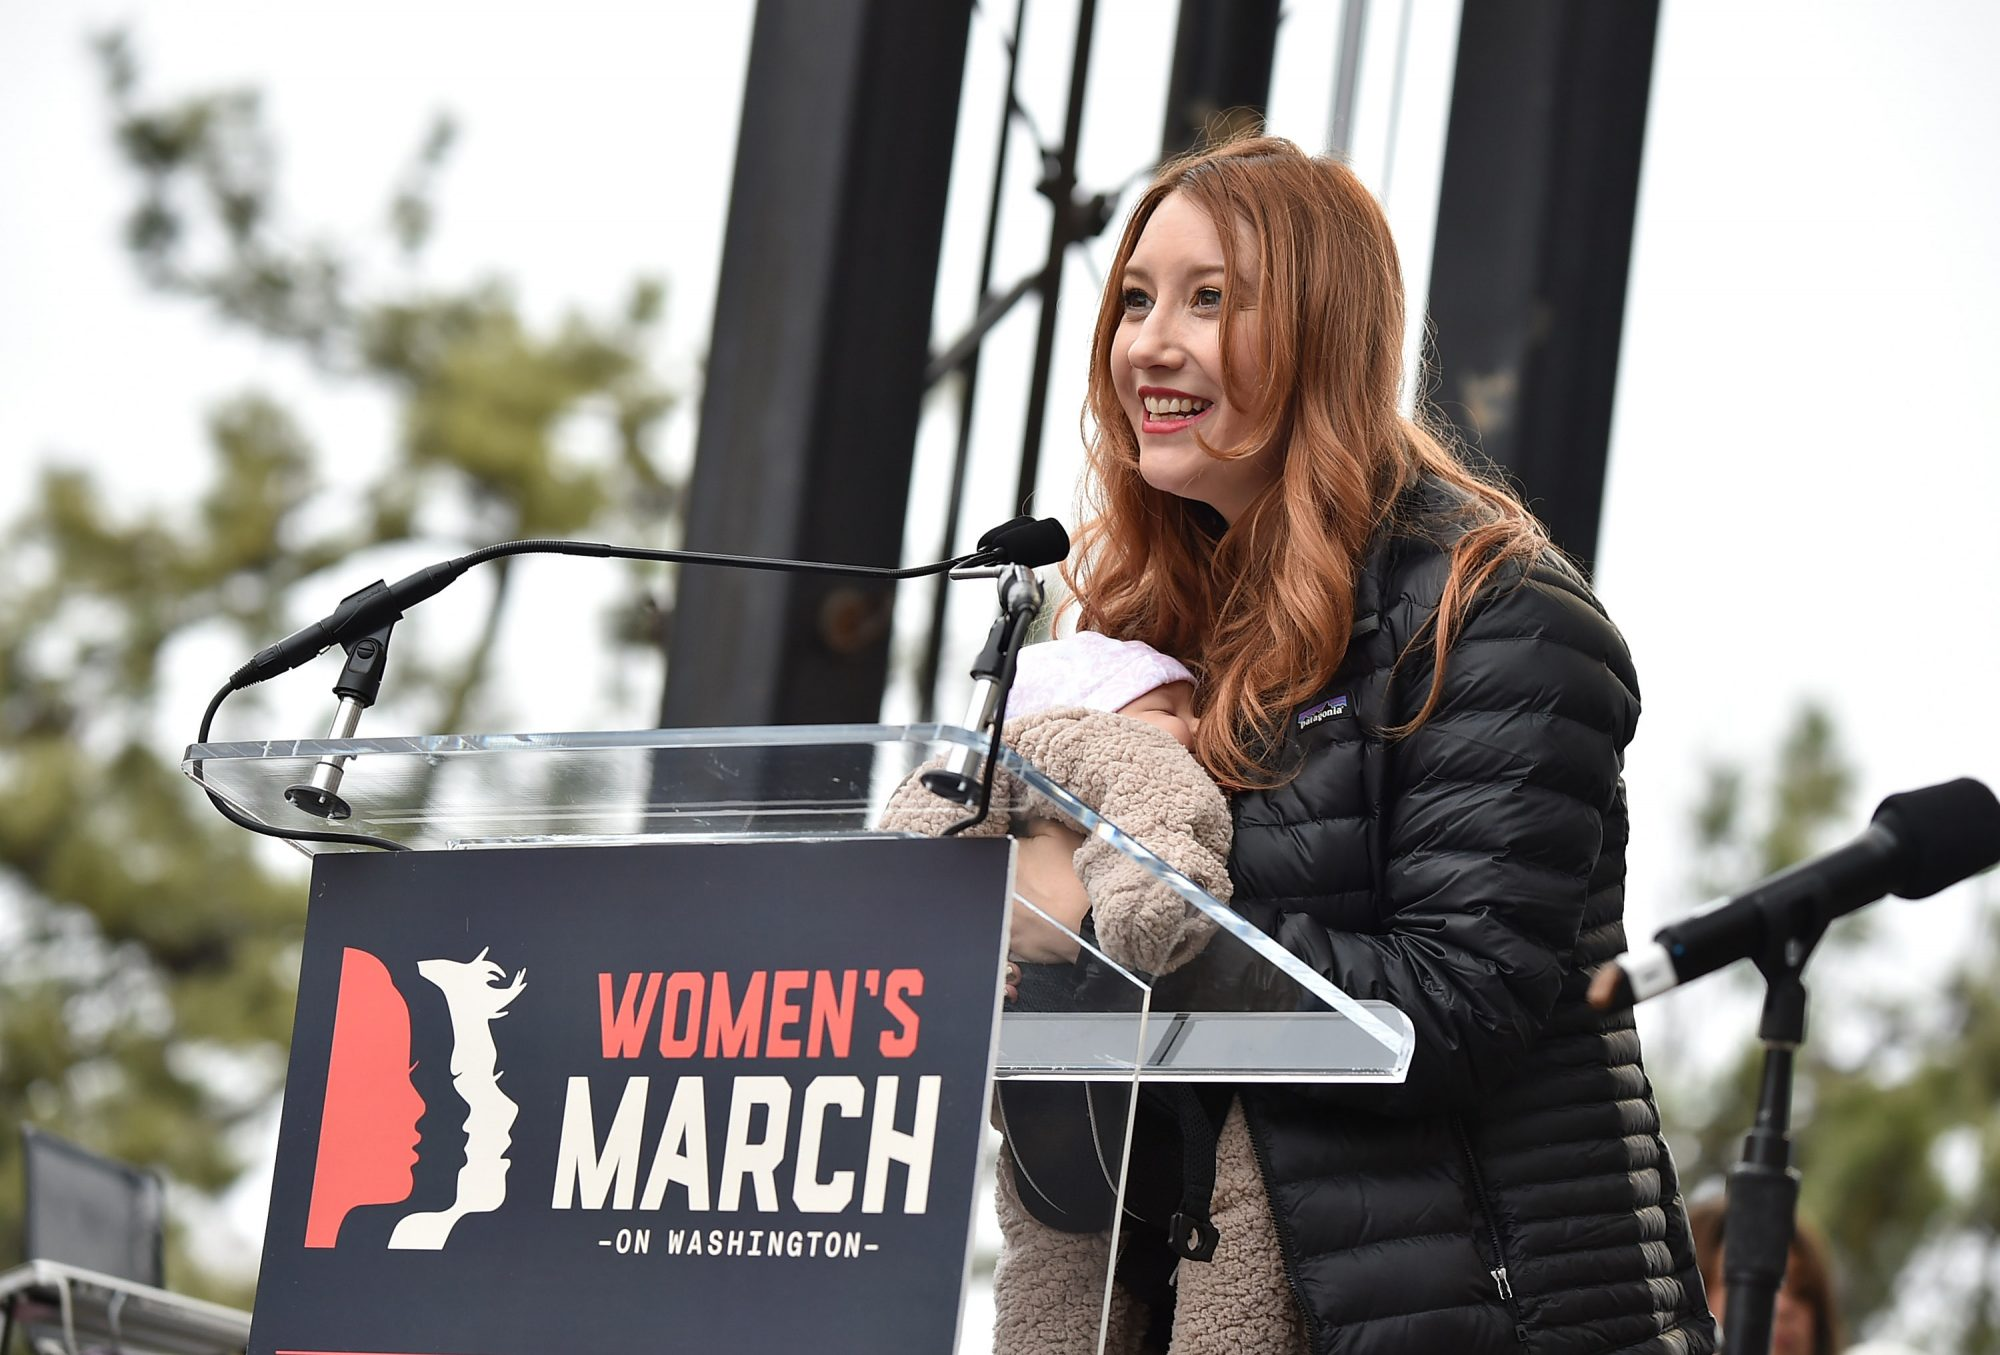 Women's March Co-President Says White Women Need to Acknowledge Their Privilege